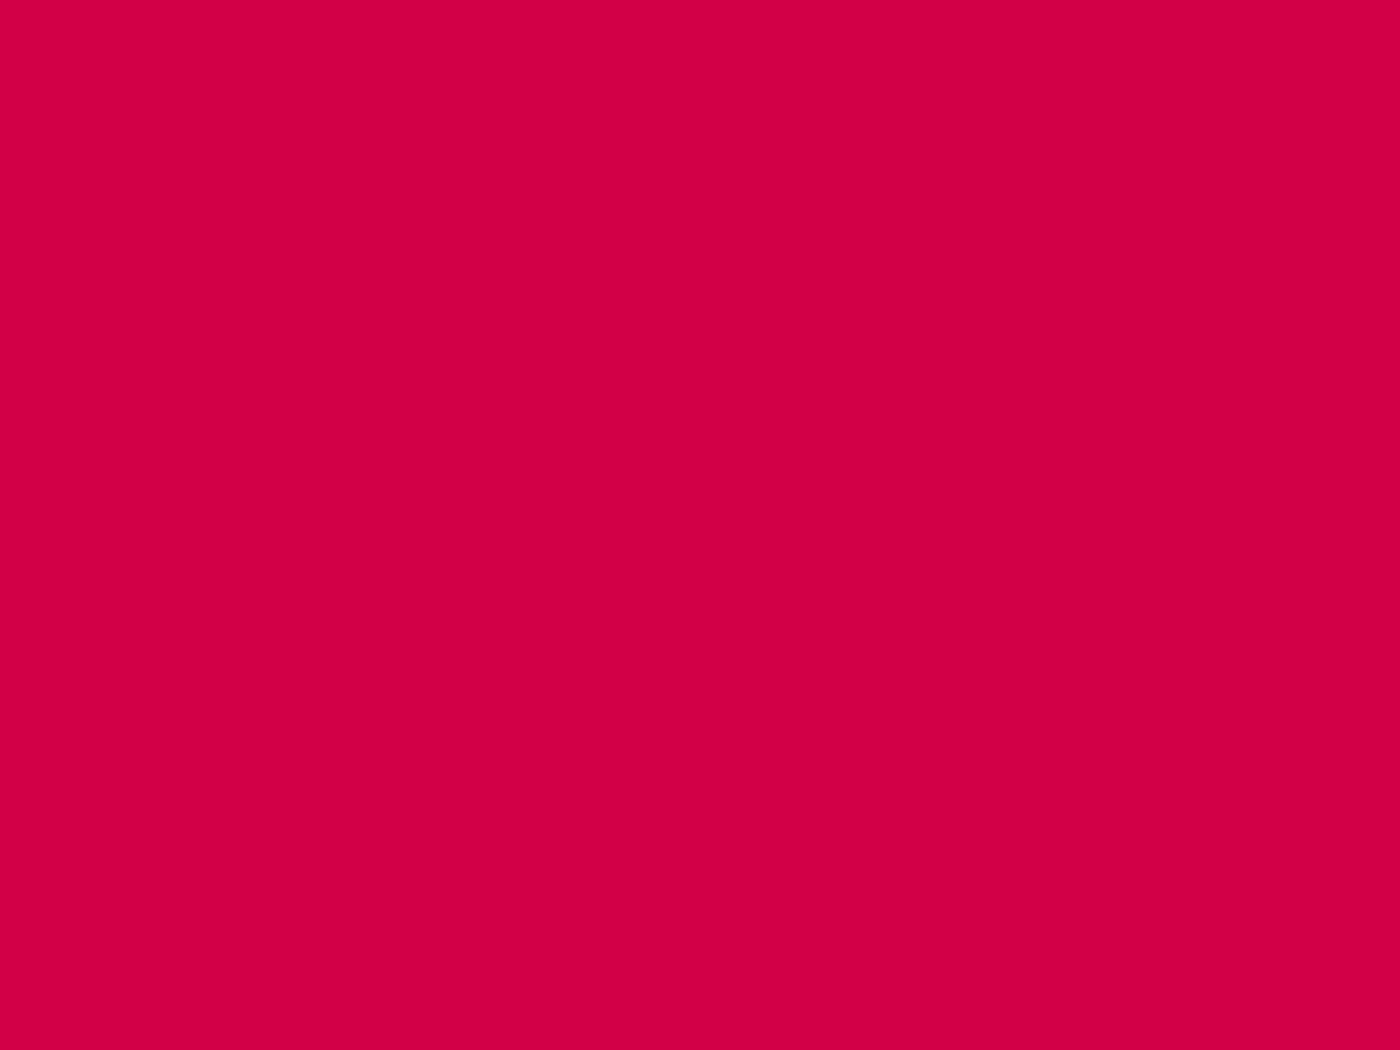 1400x1050 Spanish Carmine Solid Color Background